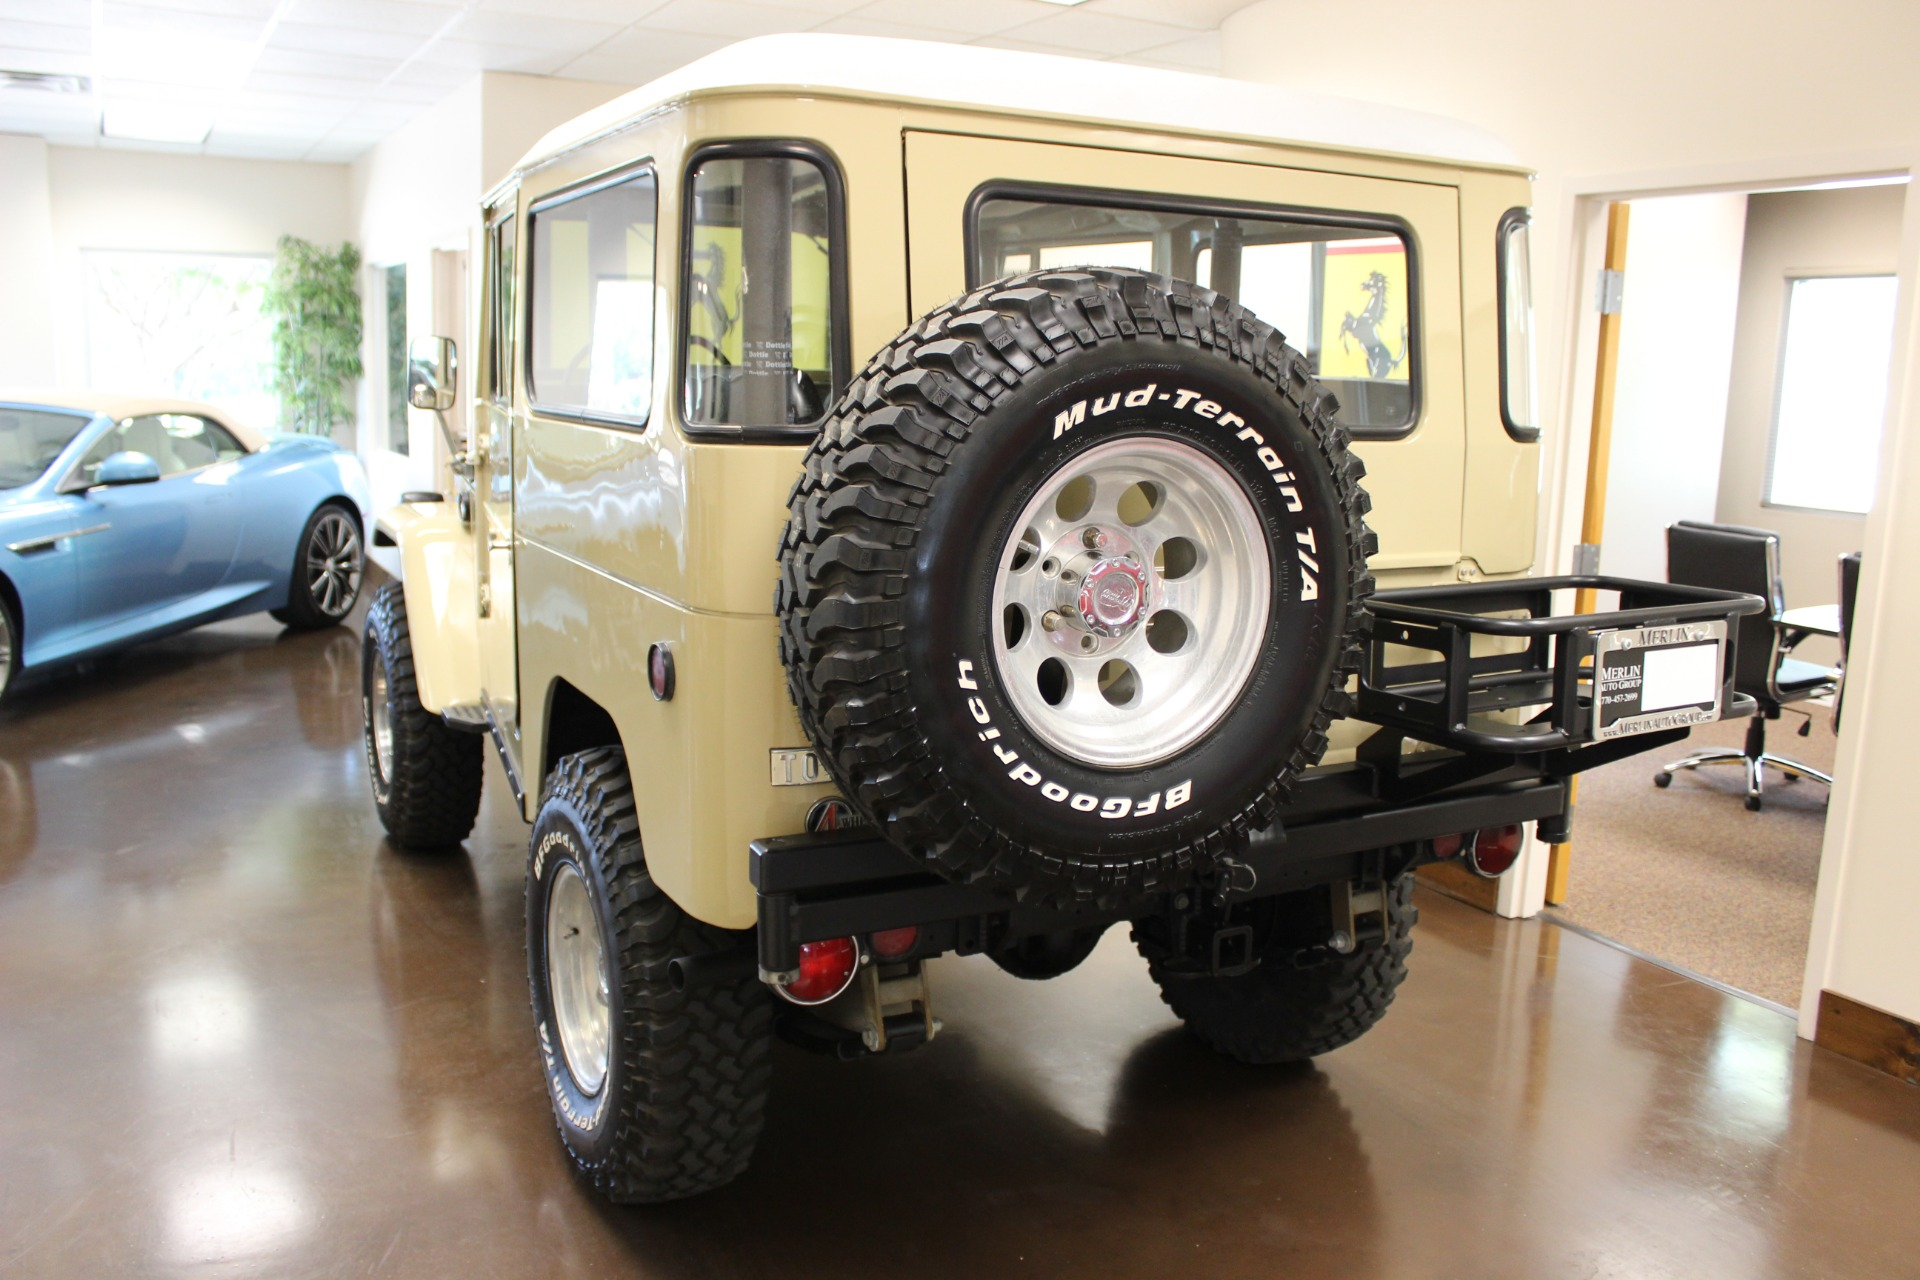 Bj40 Toyota 1983 Manual More Electric Fan Wiring Help Incl Diagram Ih8mud Forum Landcruiser Import 004 Array Used 1969 Fj40 Beige For Sale Photos Rh Topclassiccarsforsale Com